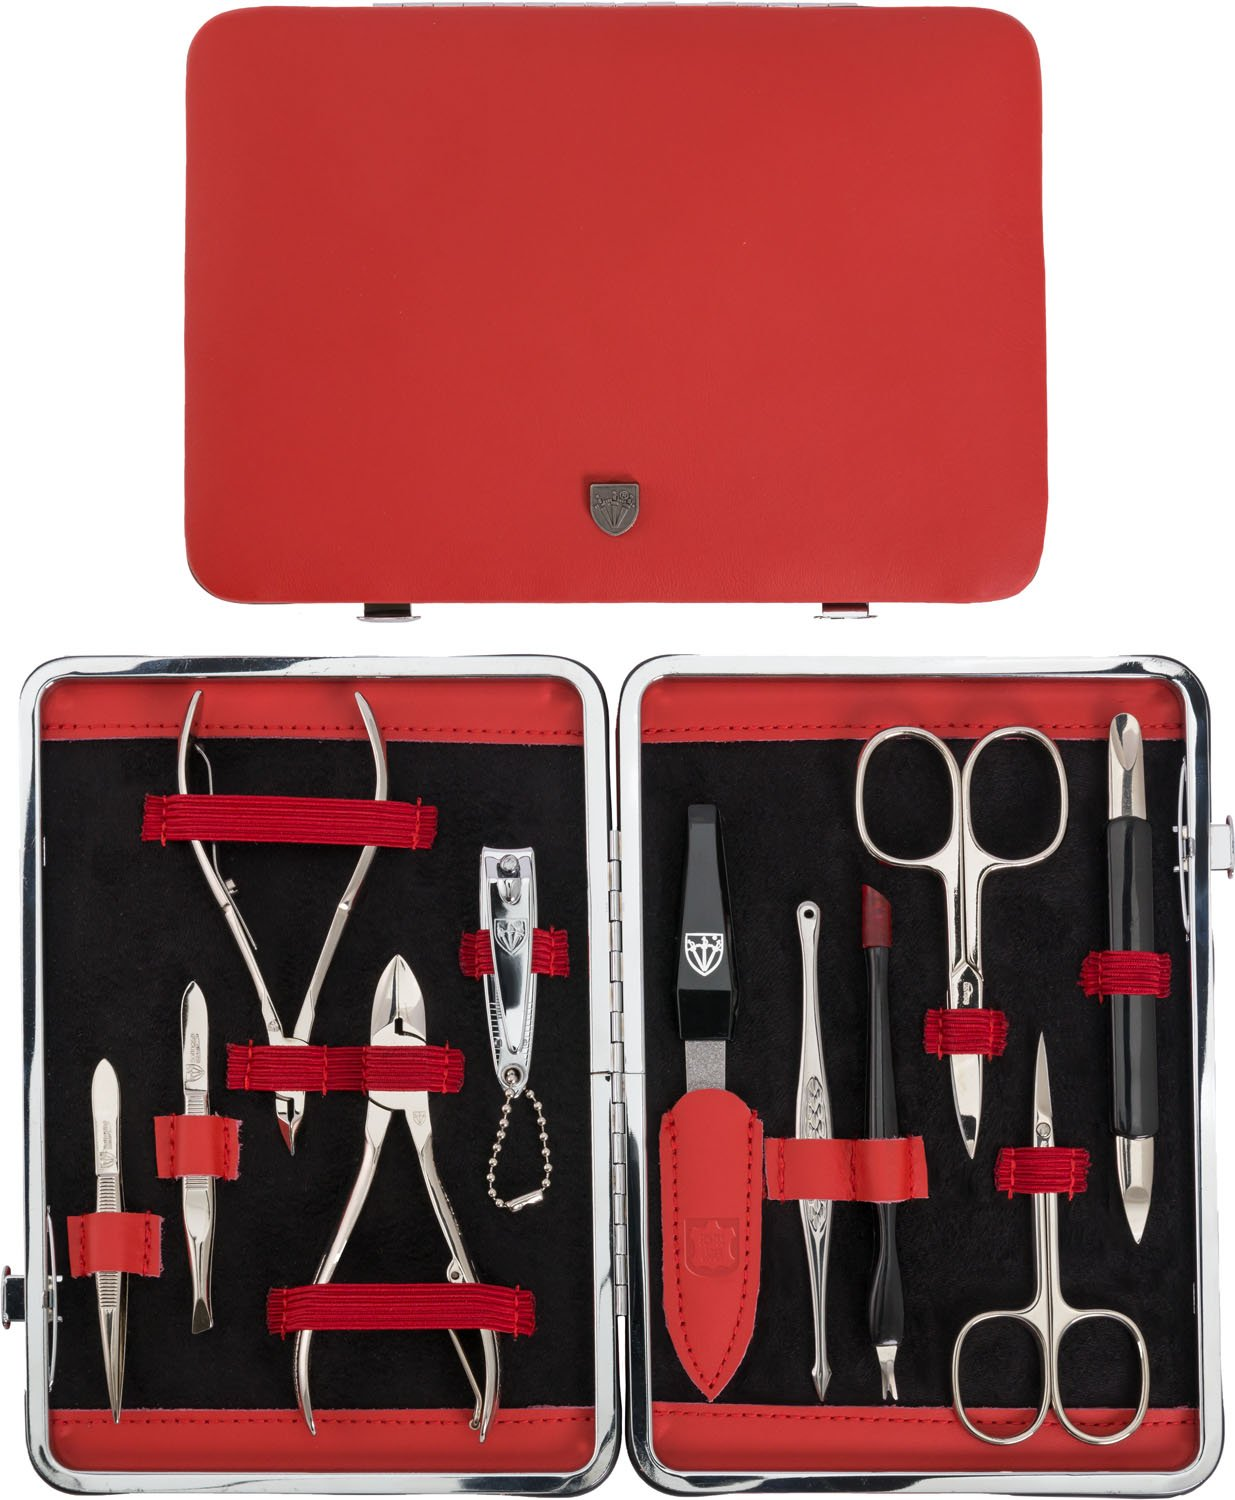 Kellermann Manicure Set Red Genuine Leather L 58383 P N